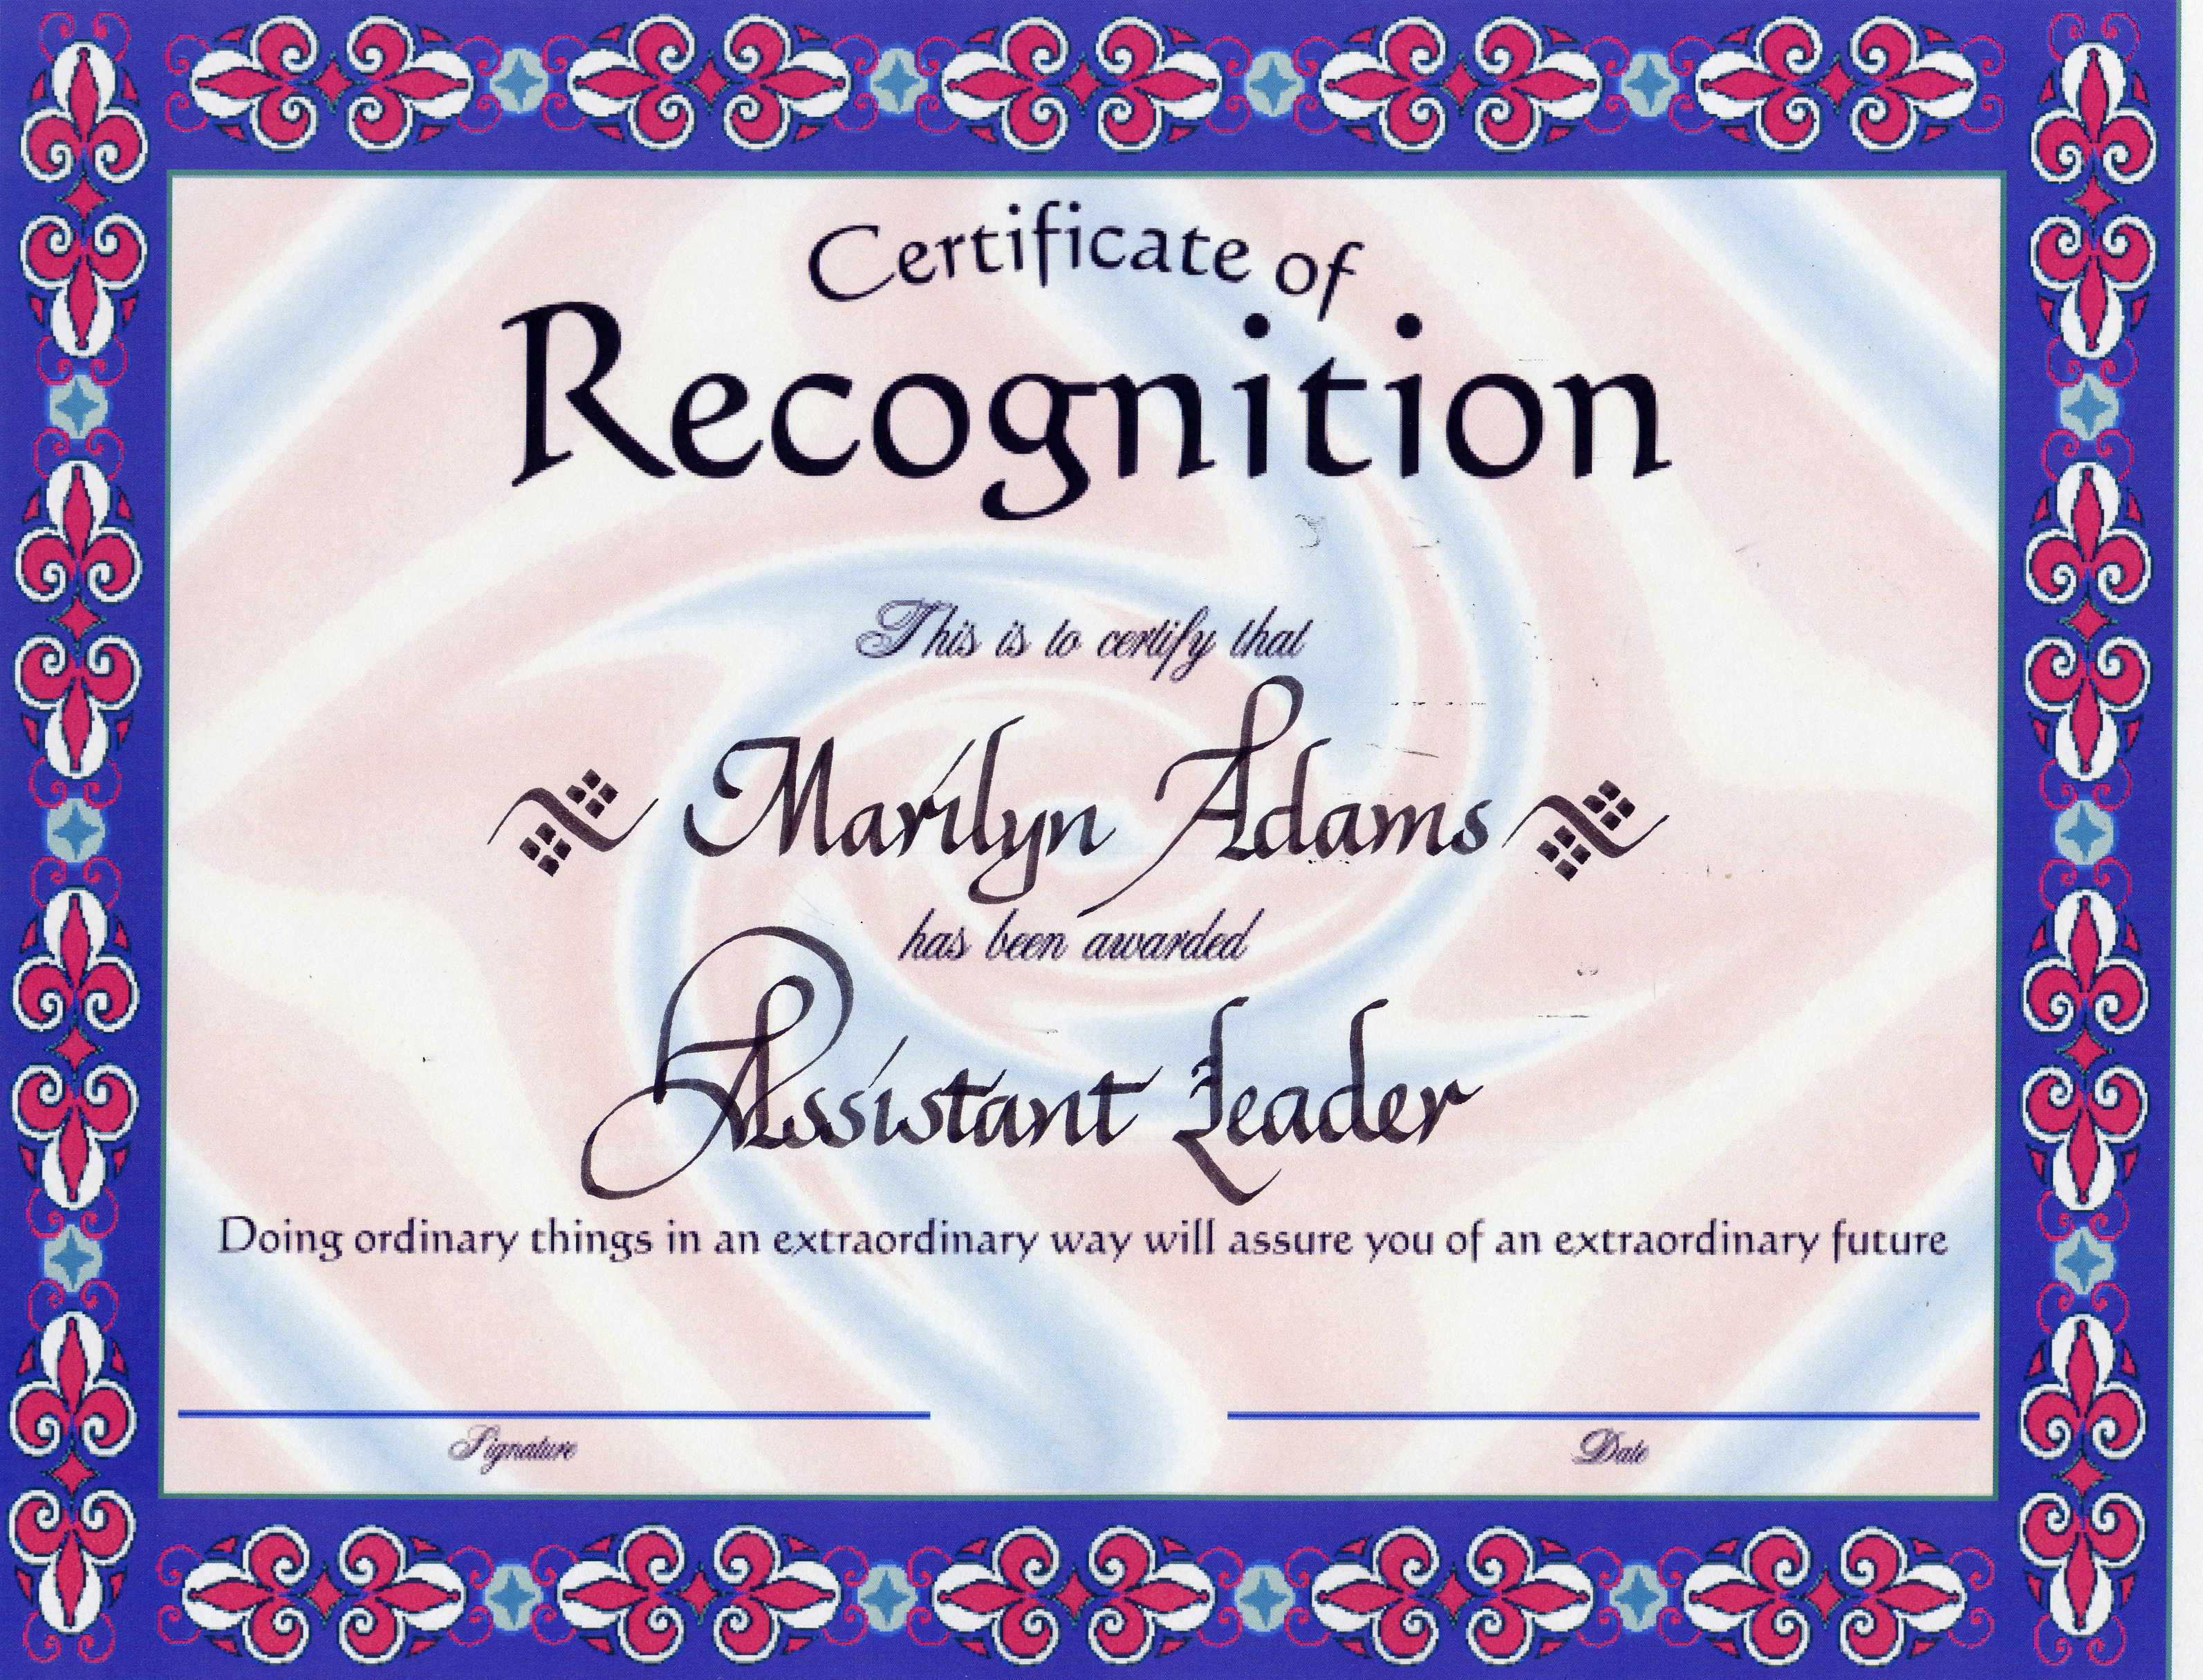 What is Certificate of Recognition